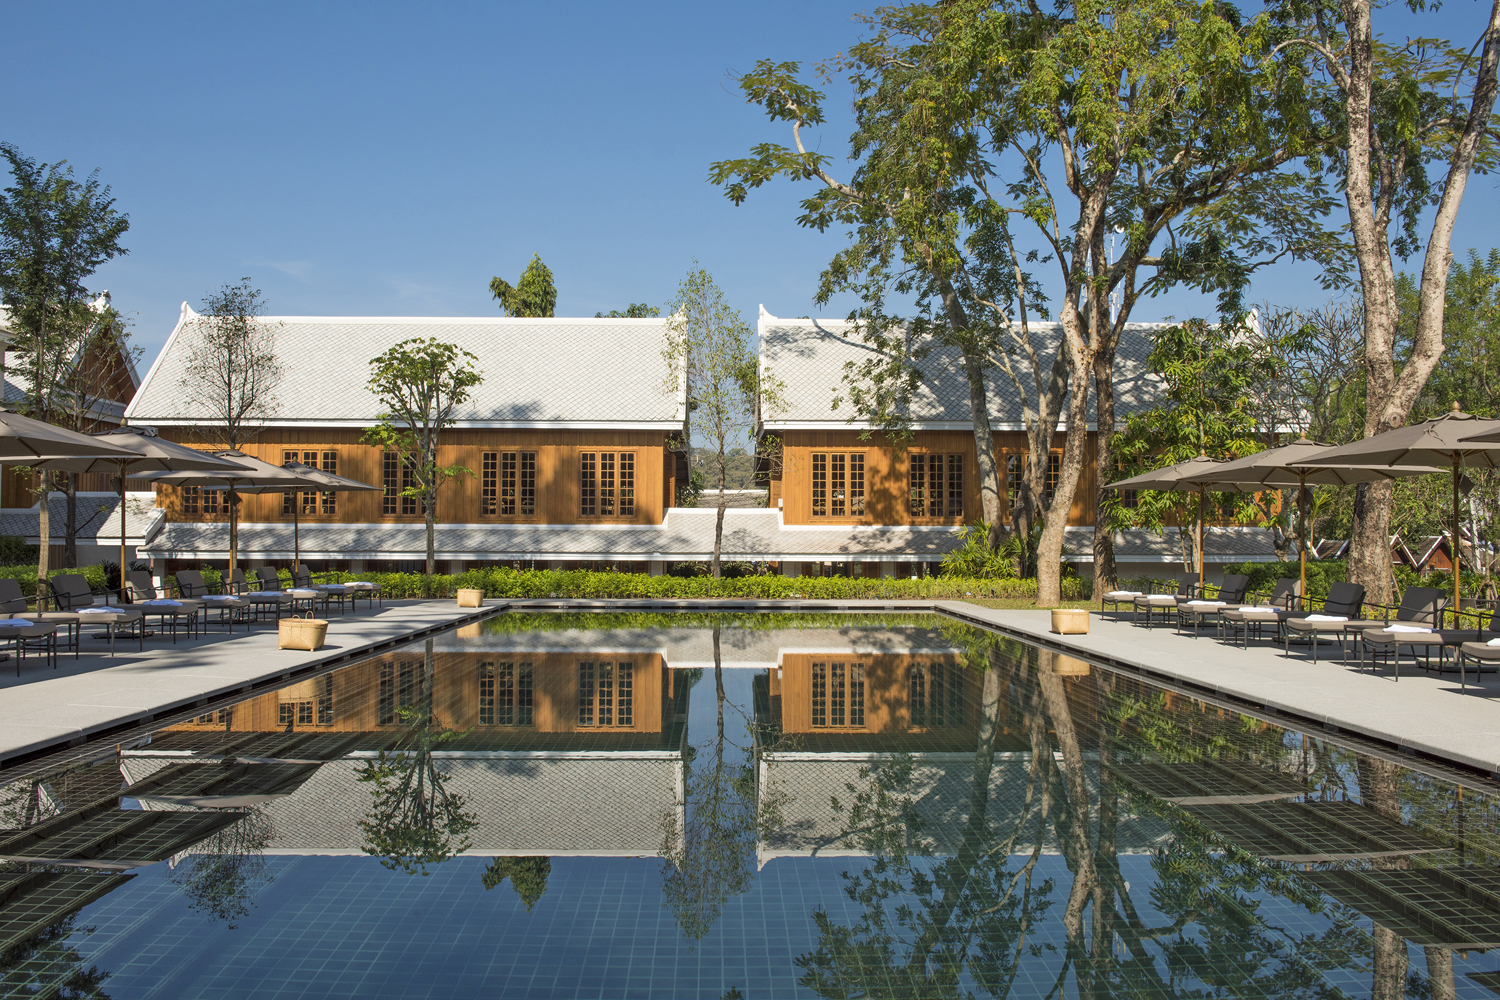 wimming Pool Hotel Azerai; Luang Prabang; Laos by Michelle Chaplow